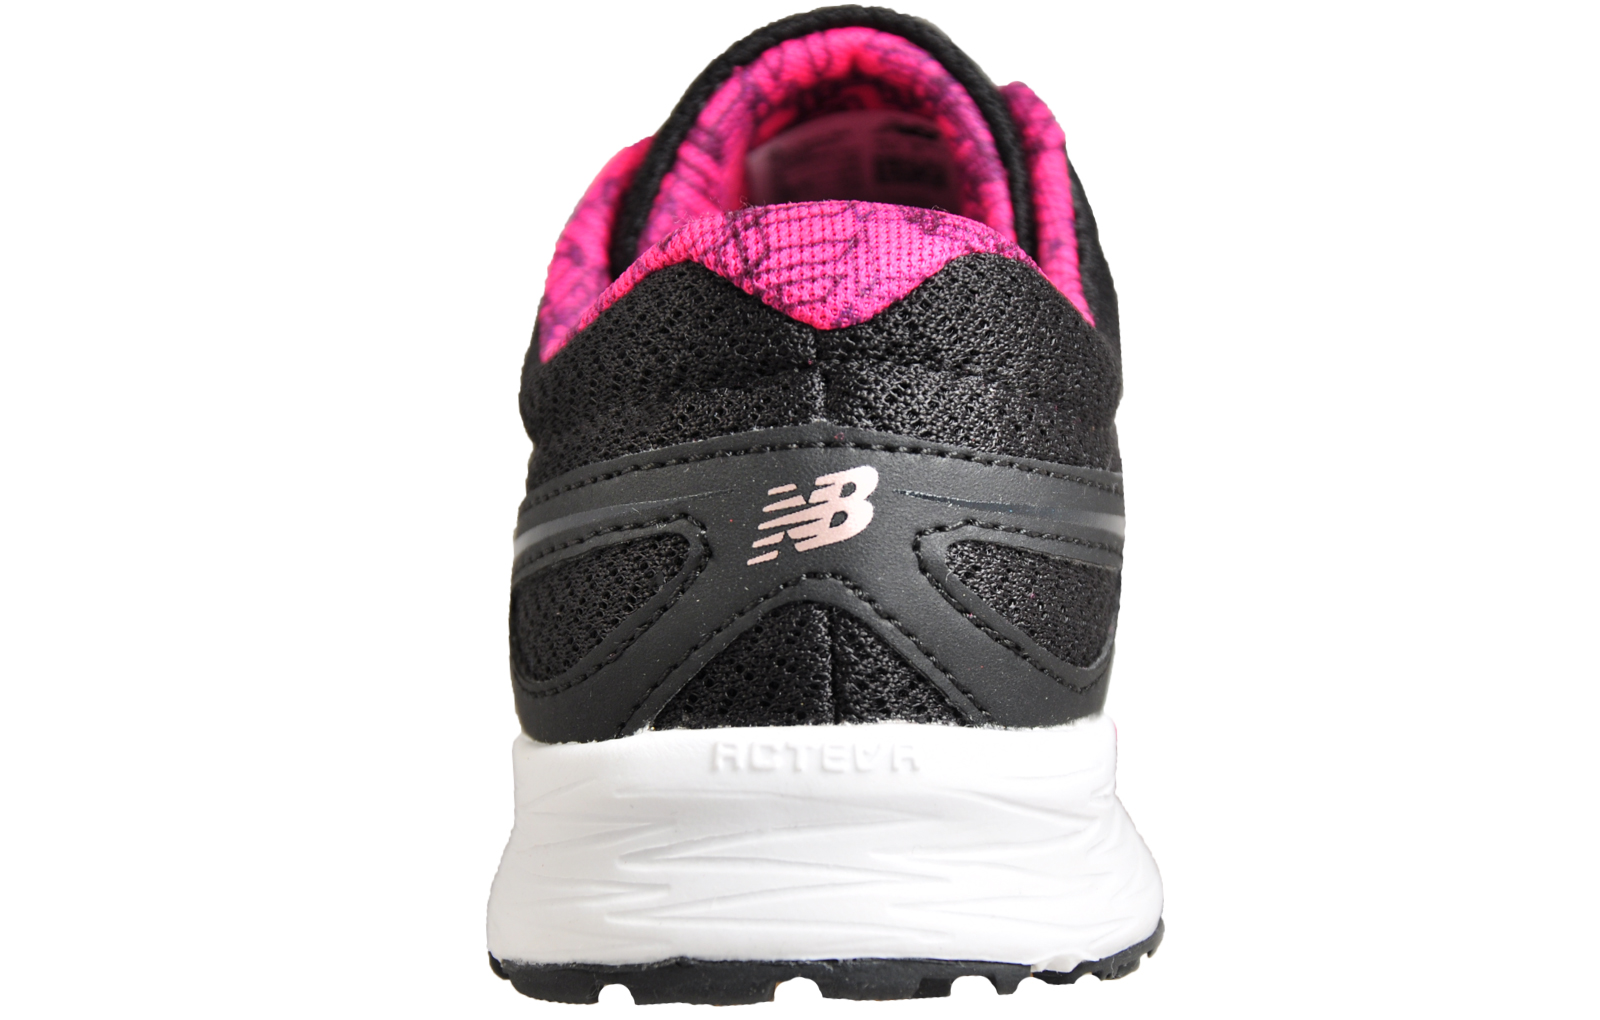 New Balance Flash-Rn 2 Women s Running Shoes Gym Fitness Trainers Black a67194a2b2b